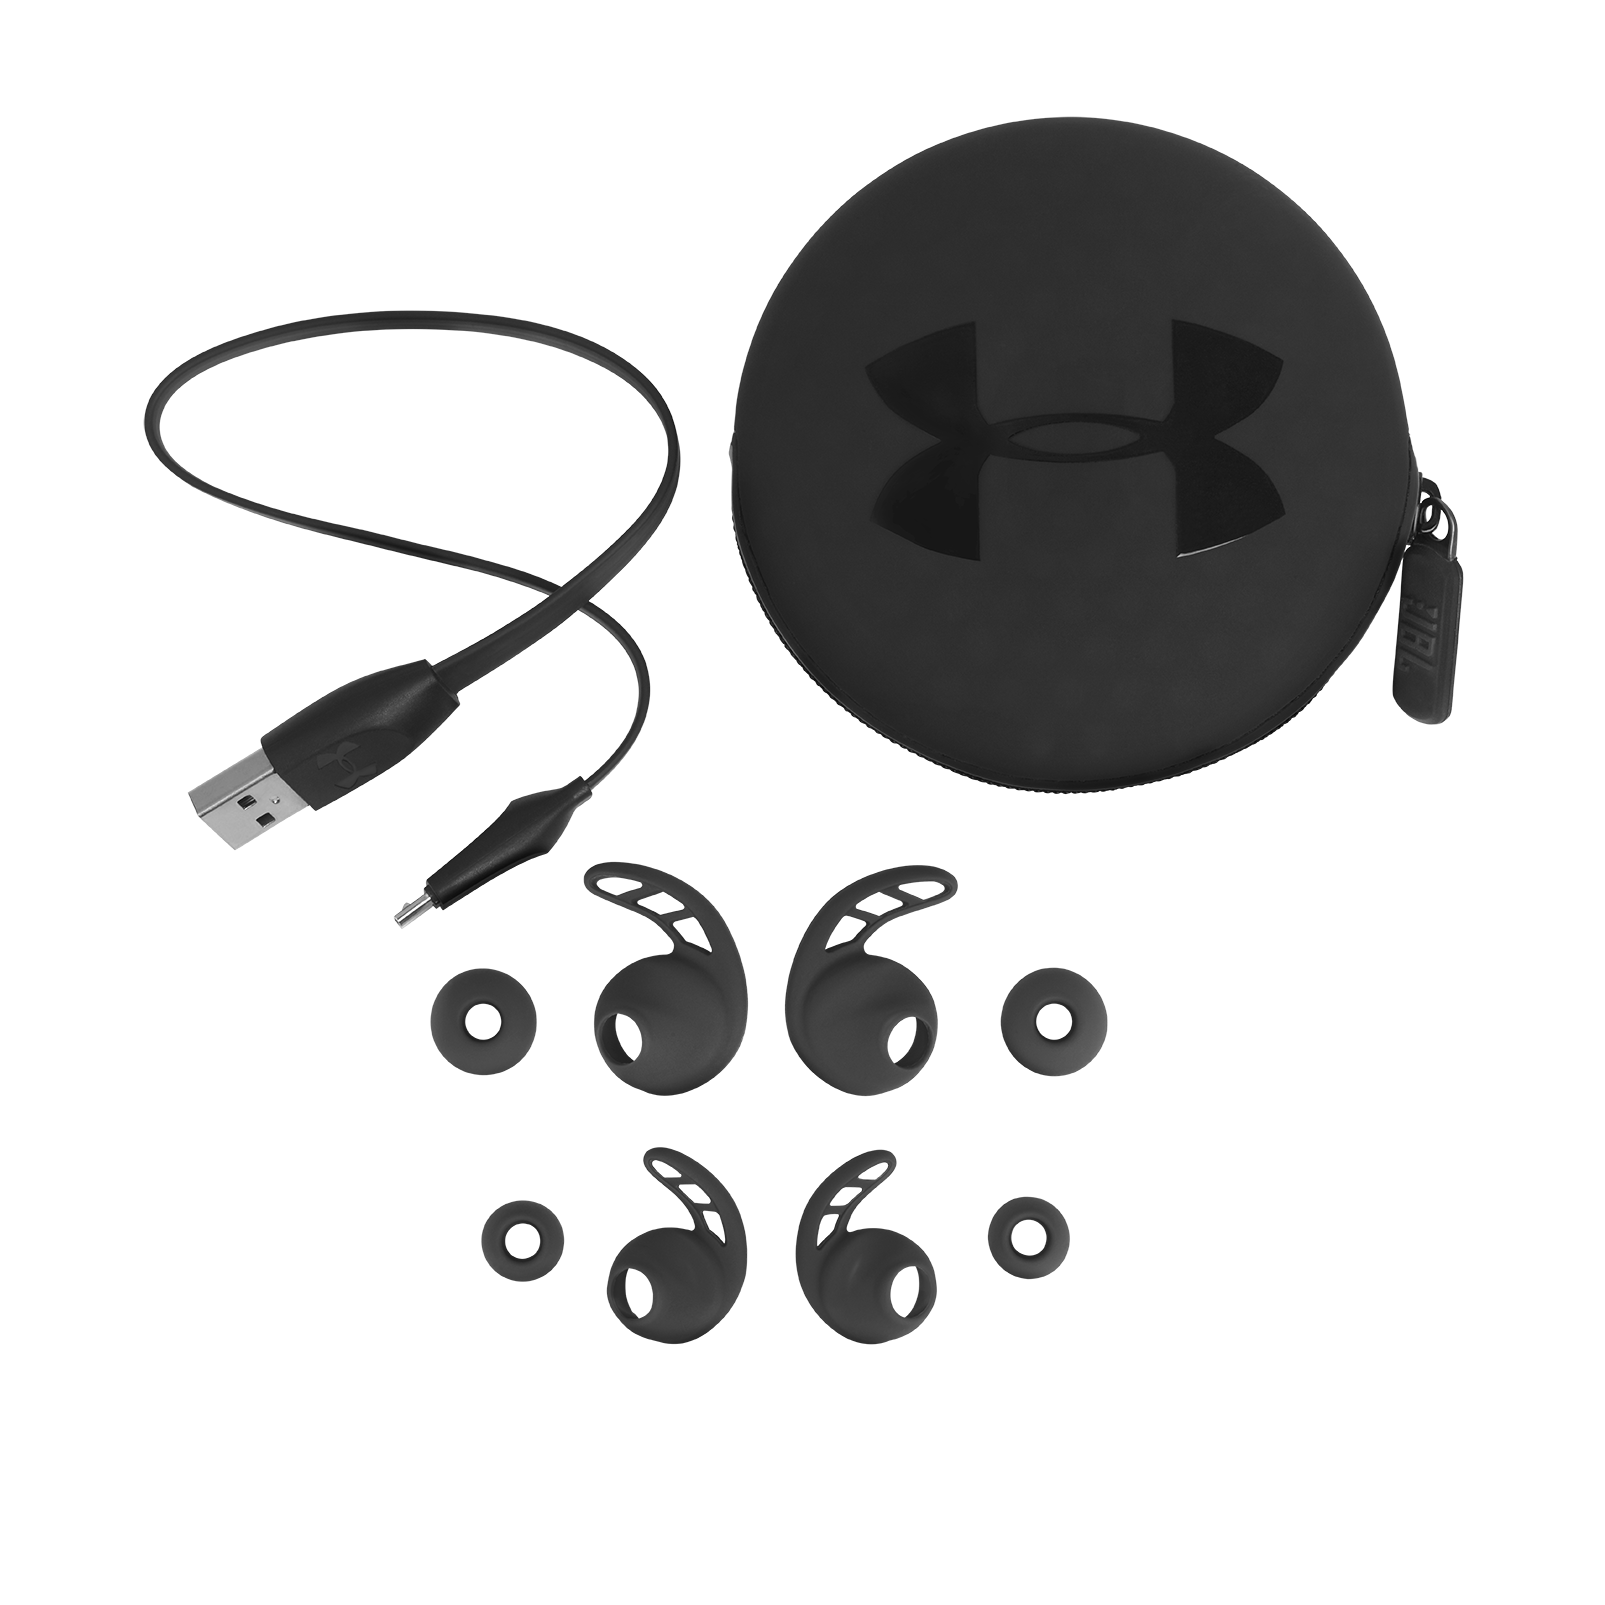 UA Sport Wireless REACT - Black - Secure-fitting wireless sport earphones with JBL technology and sound - Detailshot 4